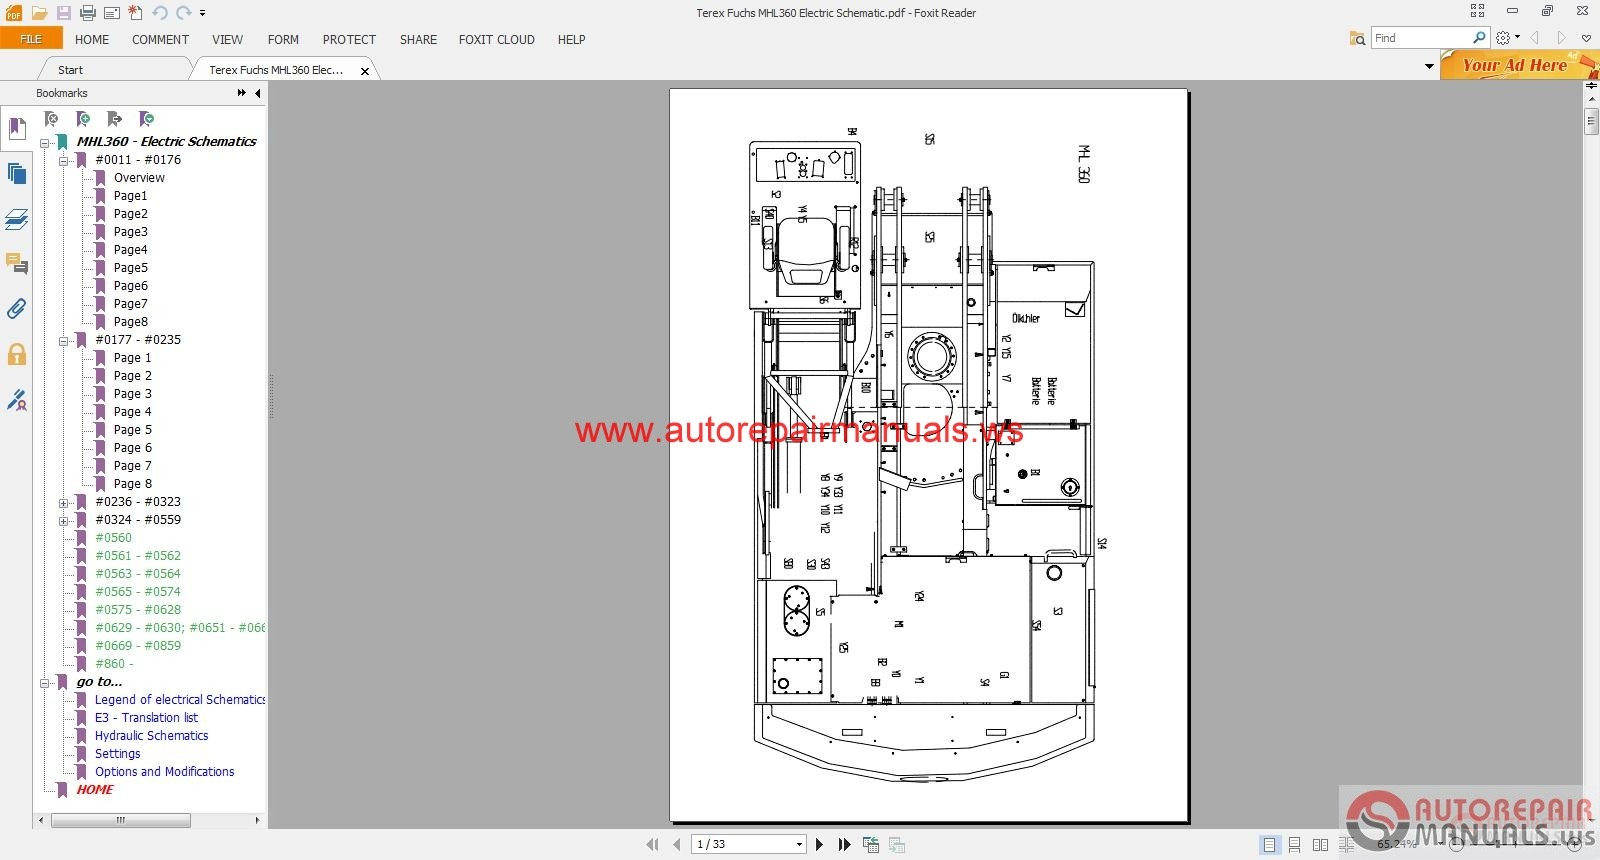 asv rc30 wiring diagram with Terex Pt 80 Wiring Diagram on Viewtopic as well Arctic Wolf Ac System Wiring also Skid Steer Parts Diagram besides F28 further Rc30 Wiring Diagram.